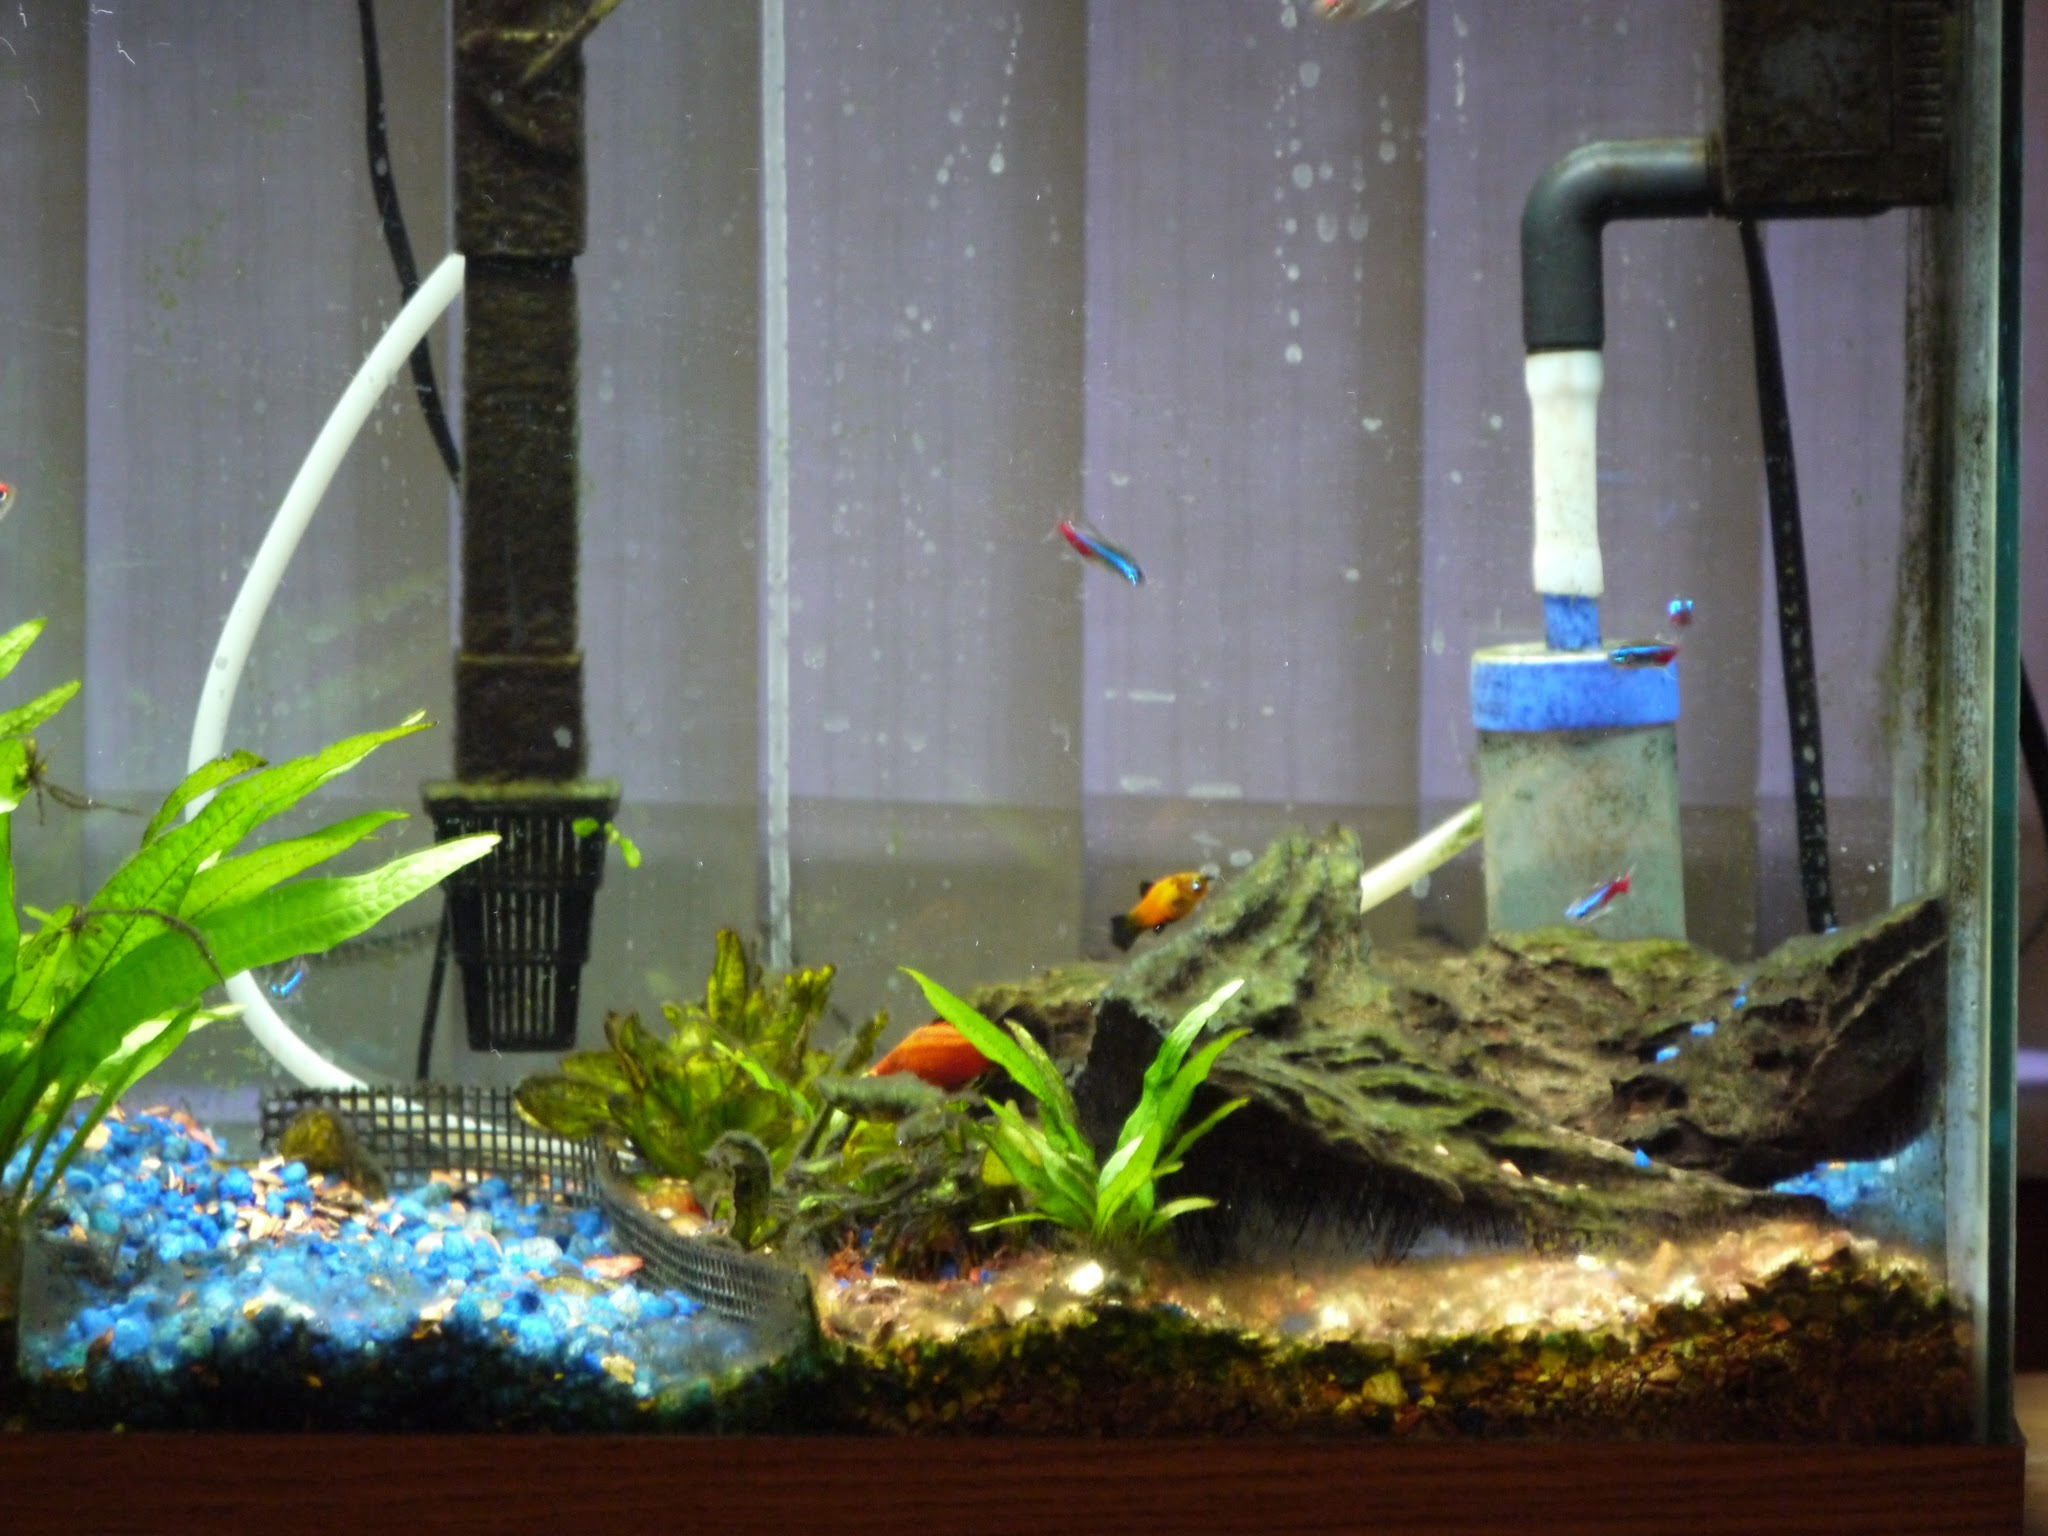 Freshwater aquarium fish keep dying - At Least The Fish Aren T Dying Meanwhile I Was Getting Great At Keeping Algae Alive There S A Reason Why Your Title Is Algae Grower When You Join